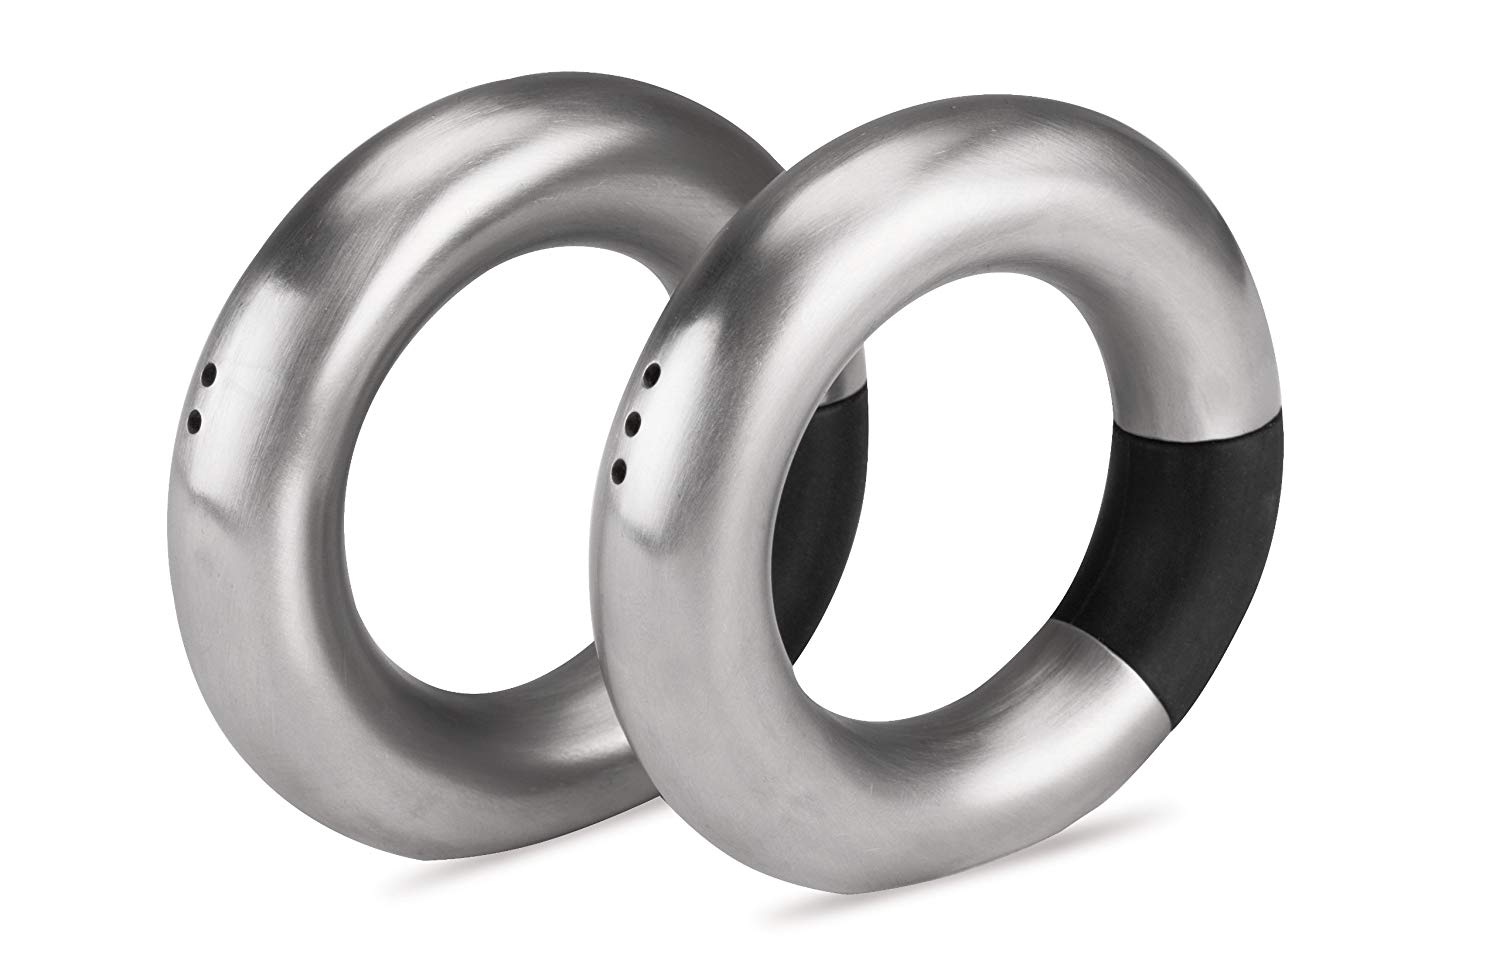 Dull Metal Salt and Pepper Set ALTURAS by Reflects in ring shape with black rubber application by Fine European Stuff